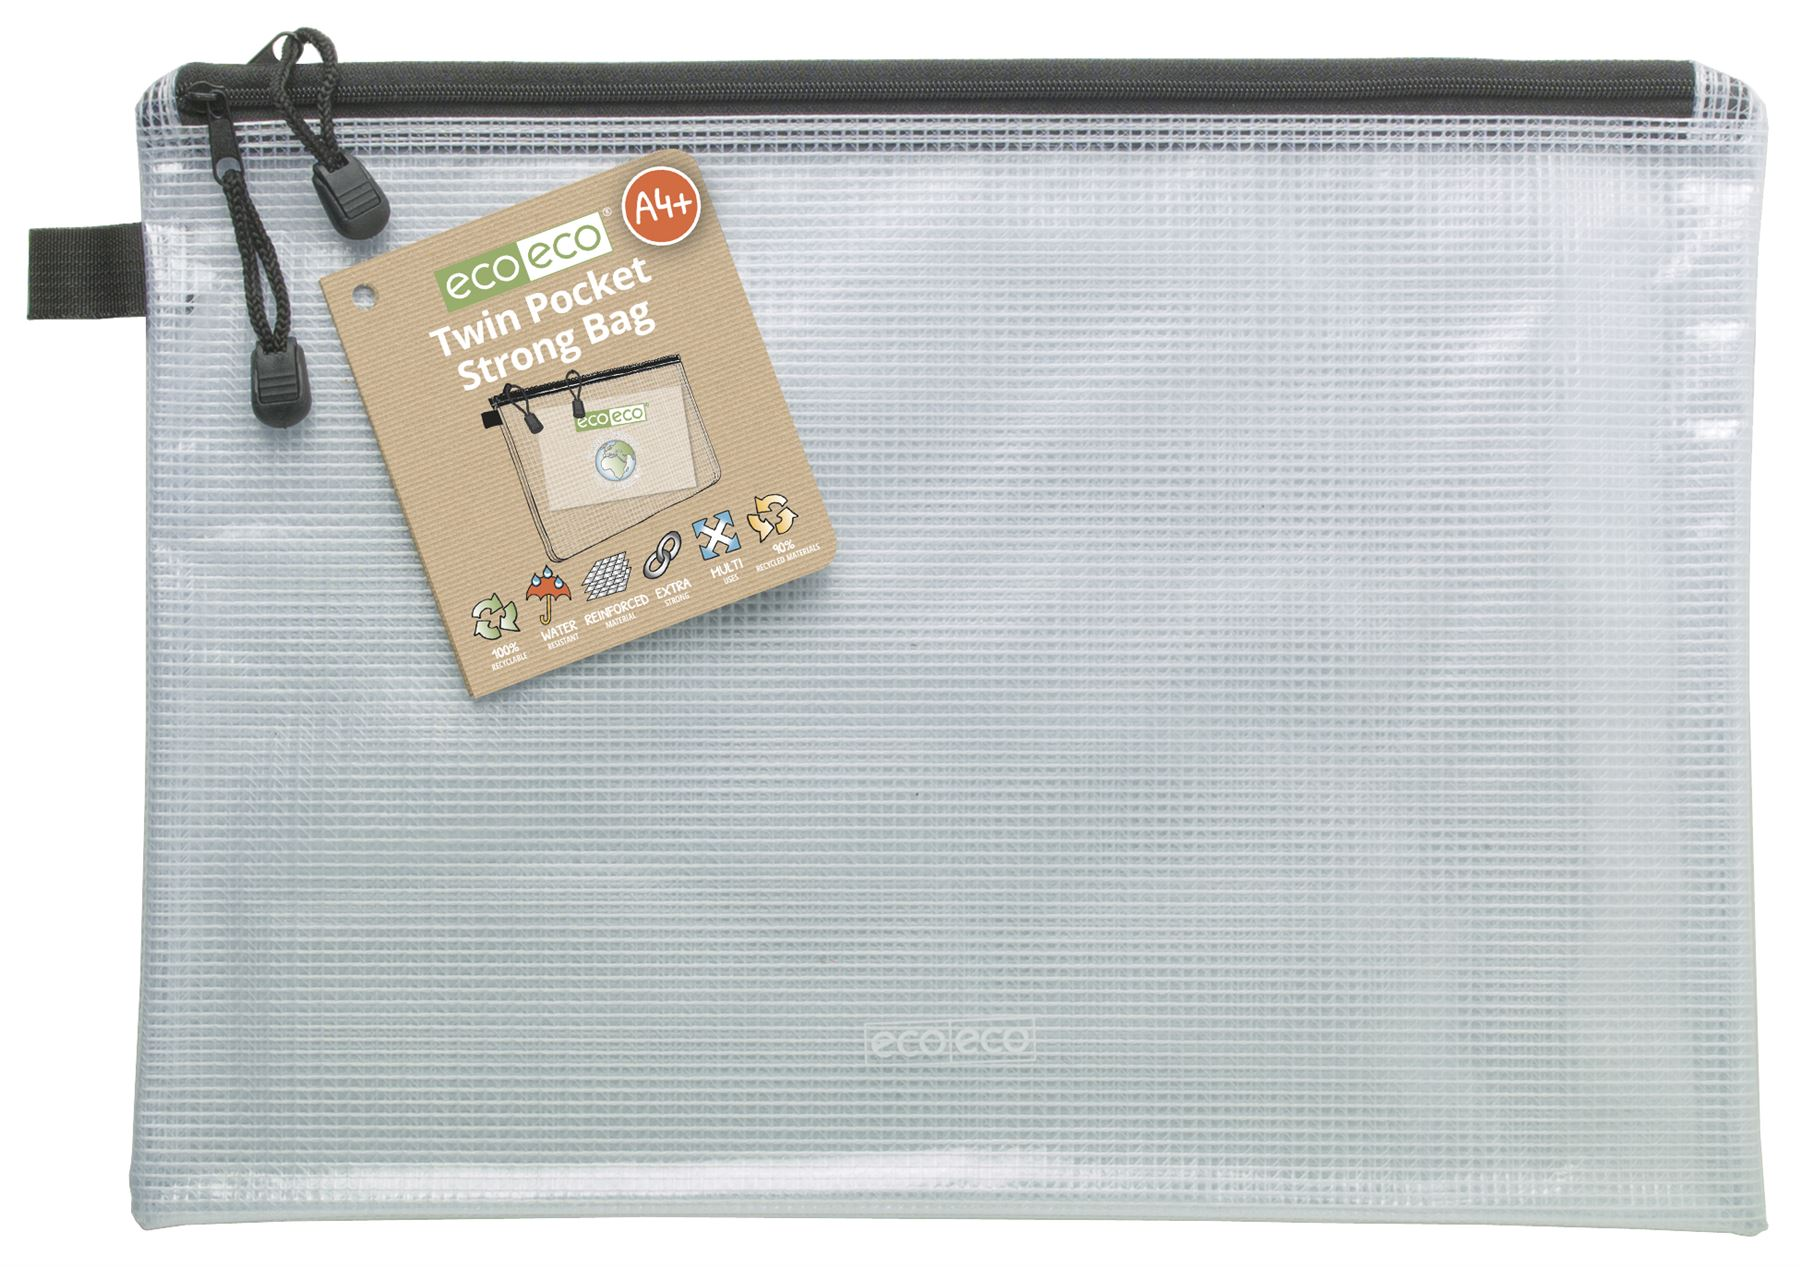 95/% Recycled Super Strong Bag Clear Mesh Tuff Case Zip 4 x eco-eco A4